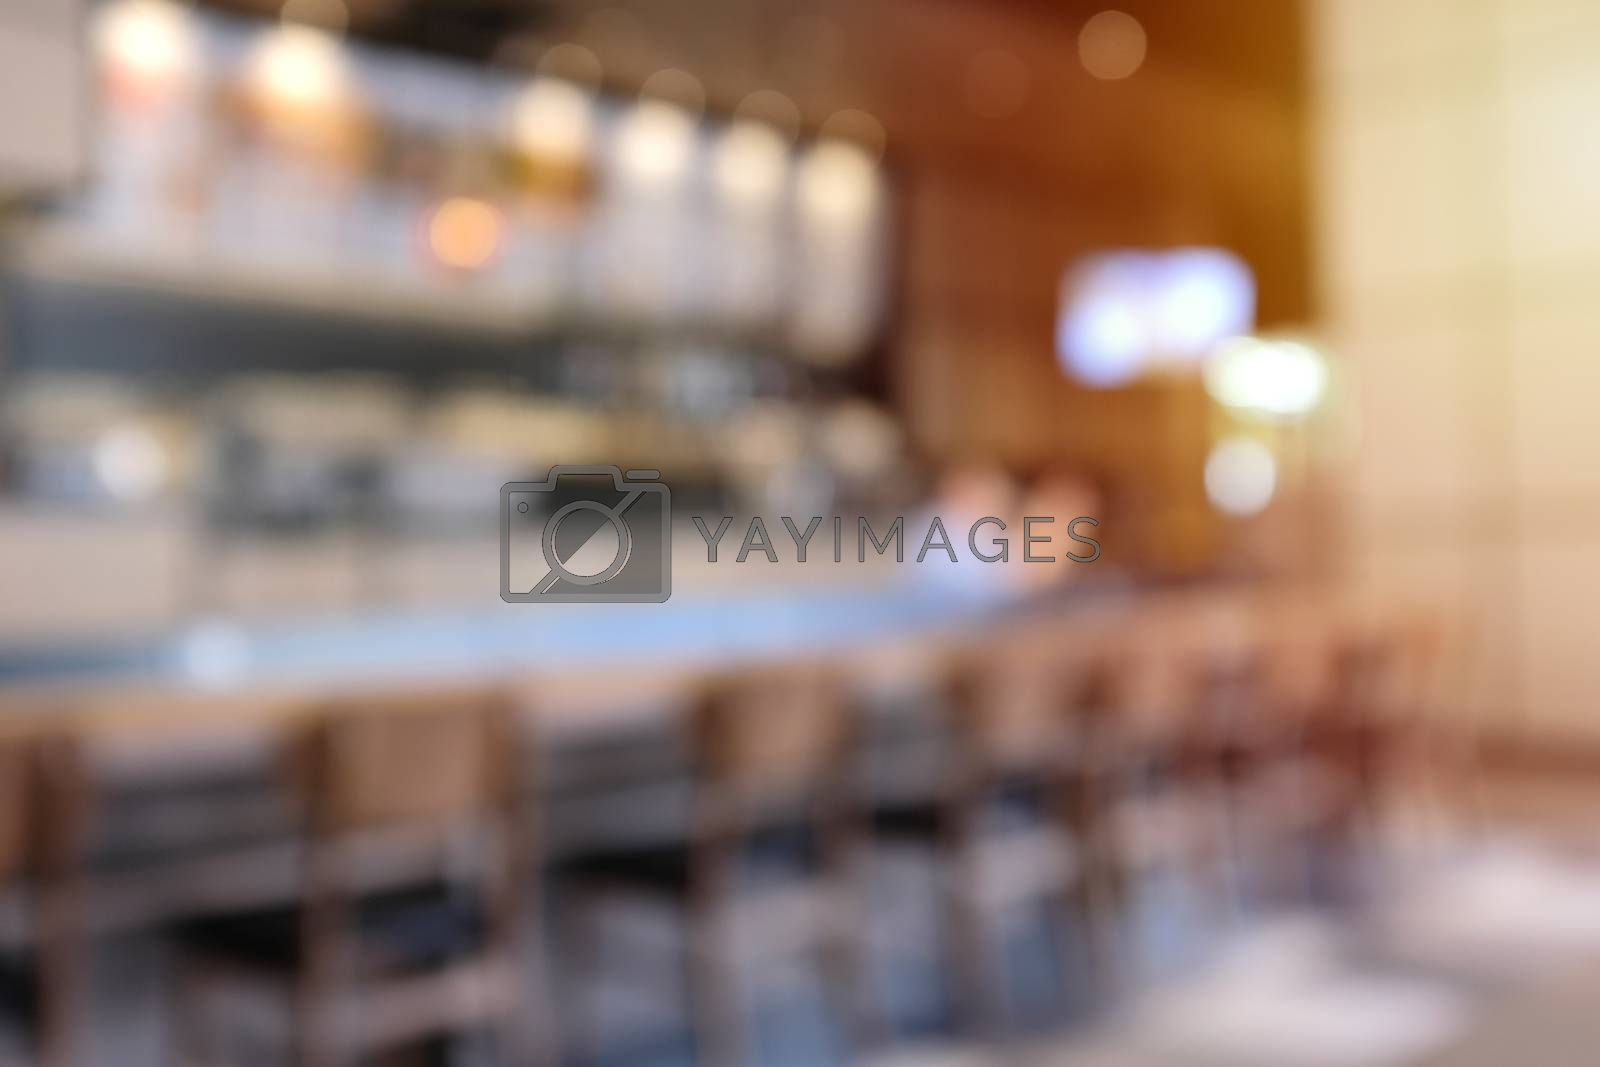 Abstract blur background of hipster cafe or restaurant interior with sunlight, for montage and mockup background